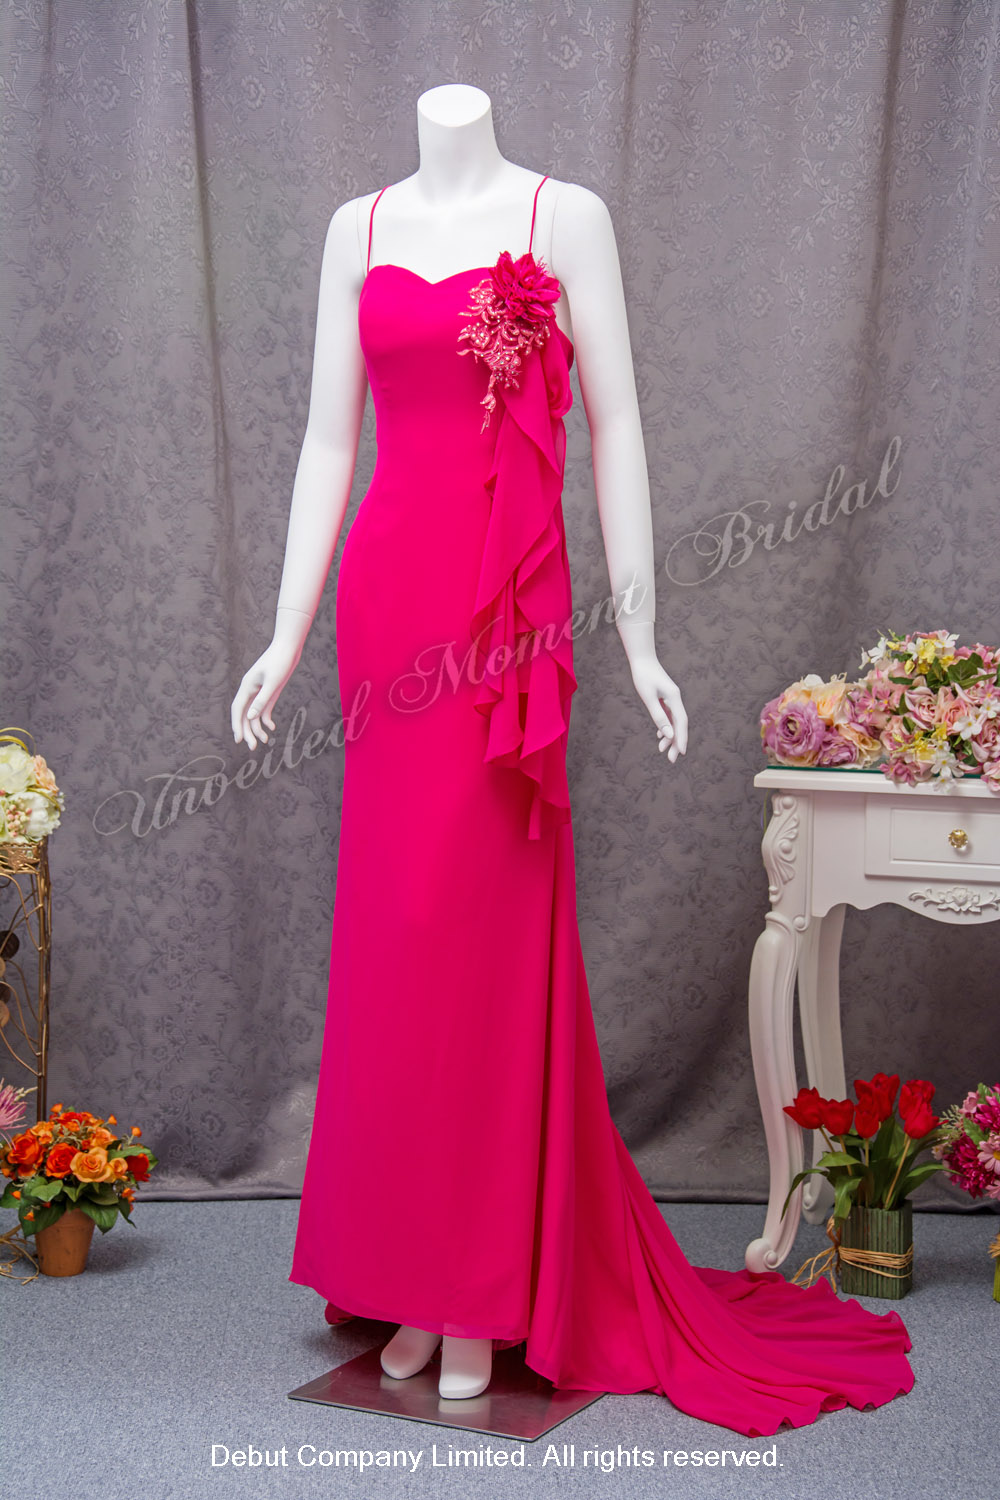 Spaghetti straps, sheath evening dress with a low-cut back and a sweep train. Detachable decorative lace piece and flower brooch can be moved around according to own-design and taste. Colour: Fuschia 吊帶, 美背, 小拖尾, 可自由配搭立體花飾及蕾絲裝飾, 桃紅色晩裝